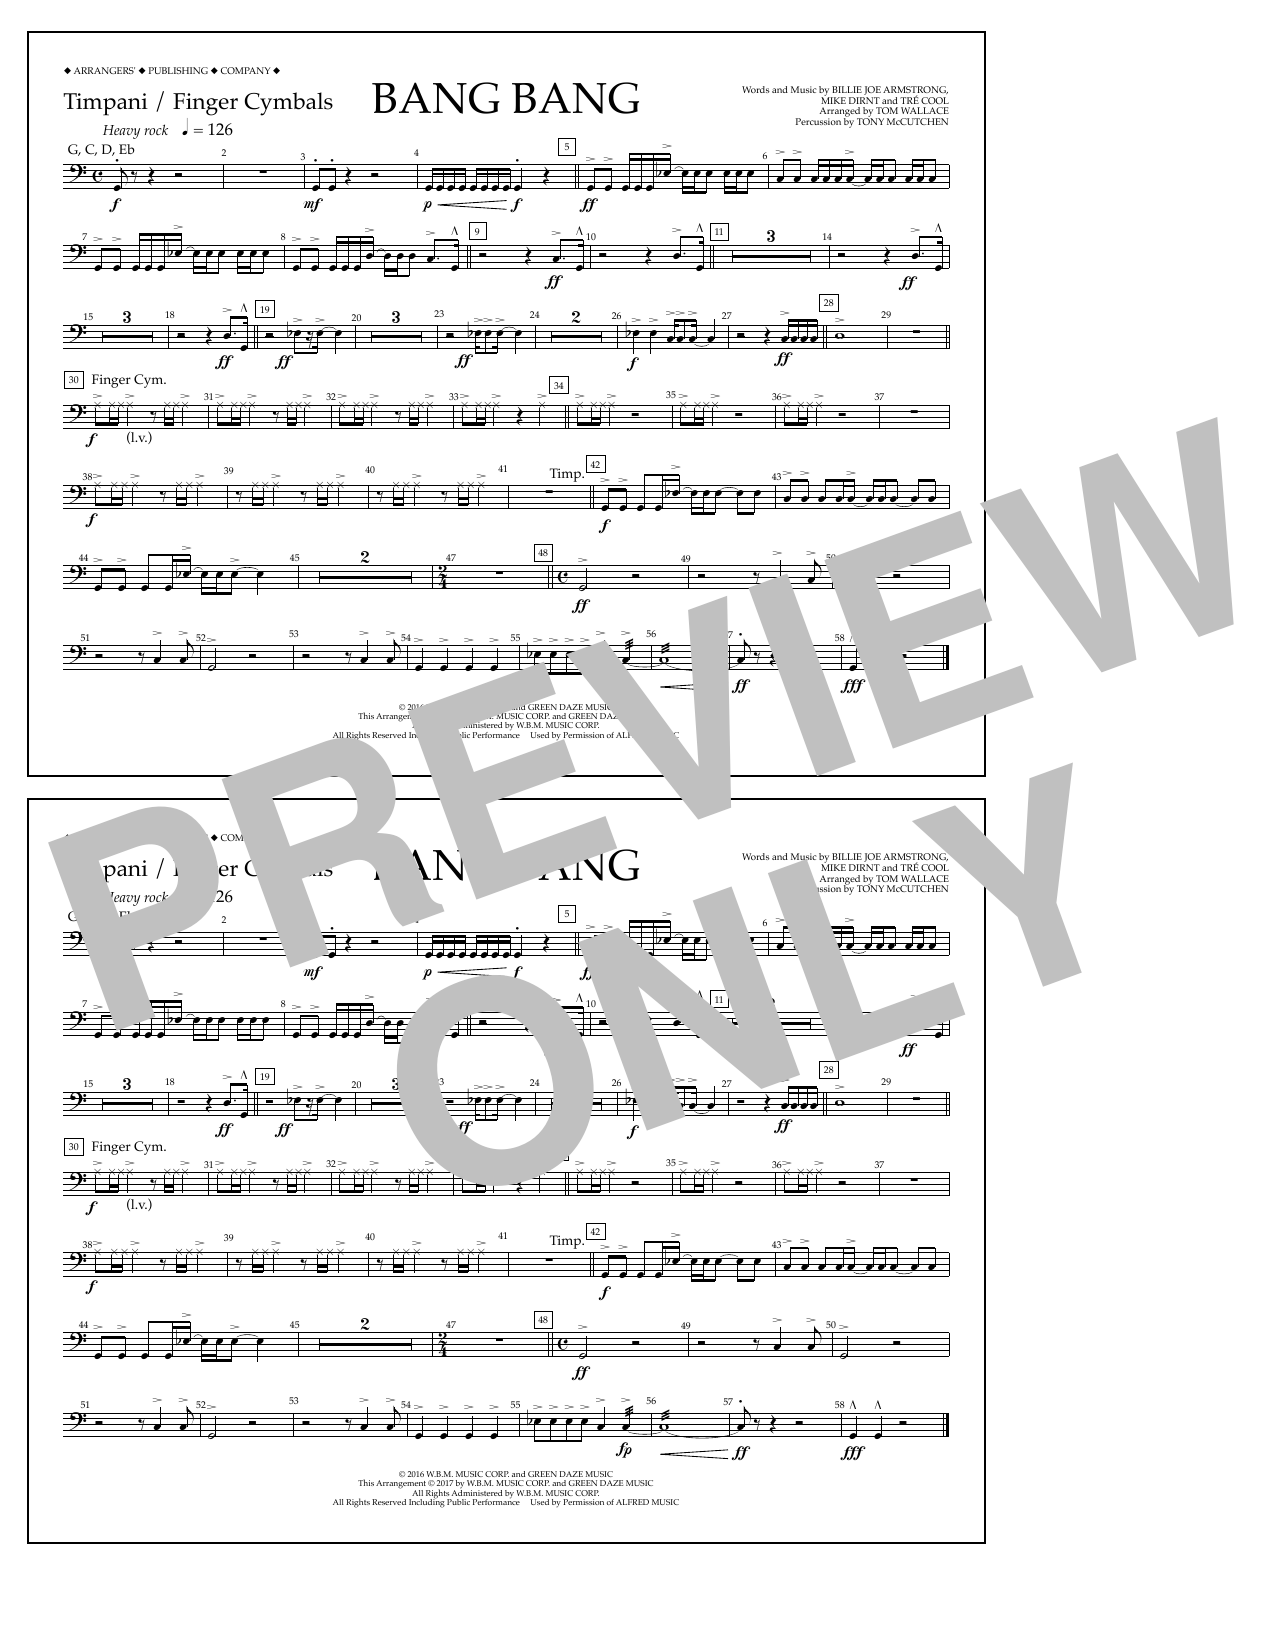 Bang Bang - Timpani/Finger Cym. Sheet Music